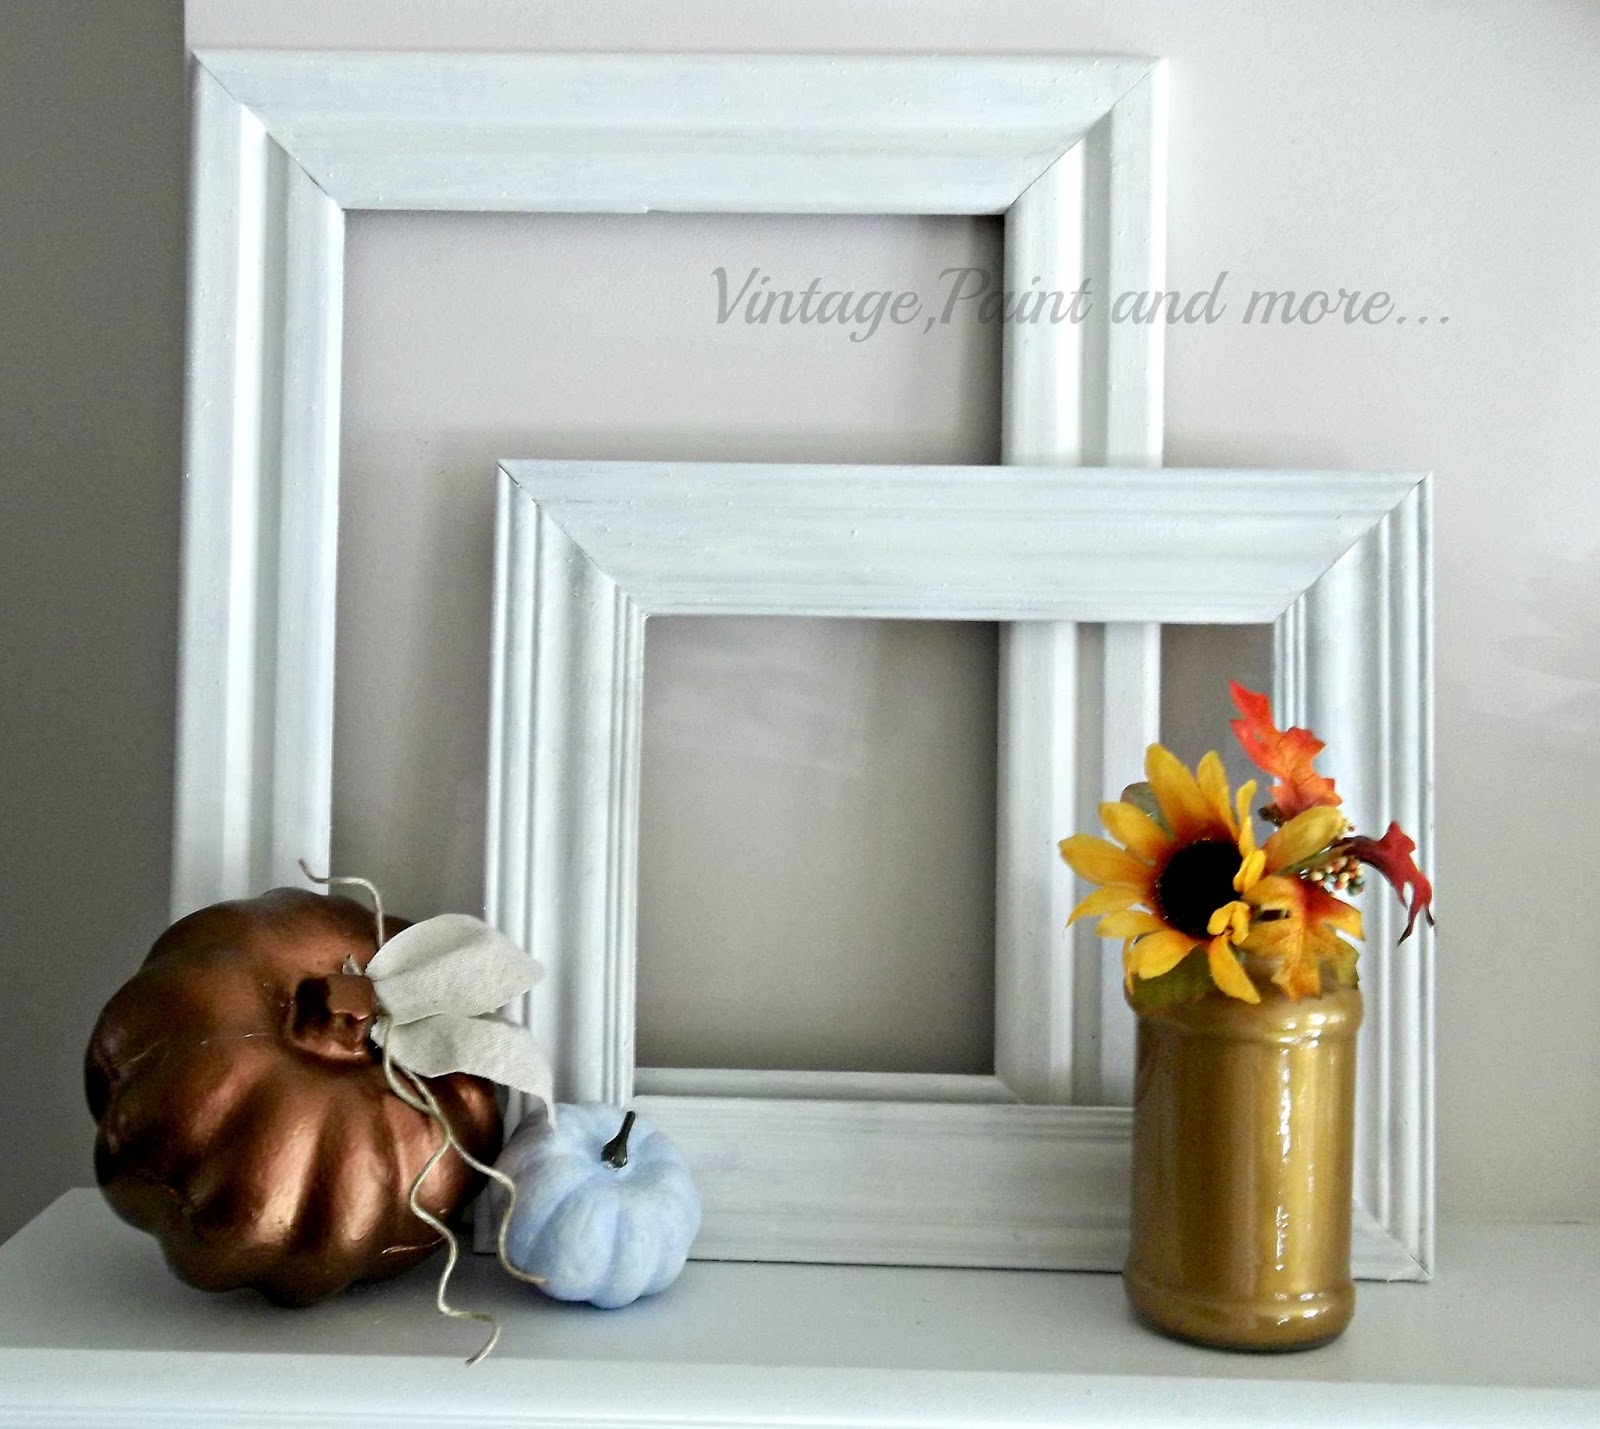 Vintage, Paint and more... painted pumpkins with metallic craft paing